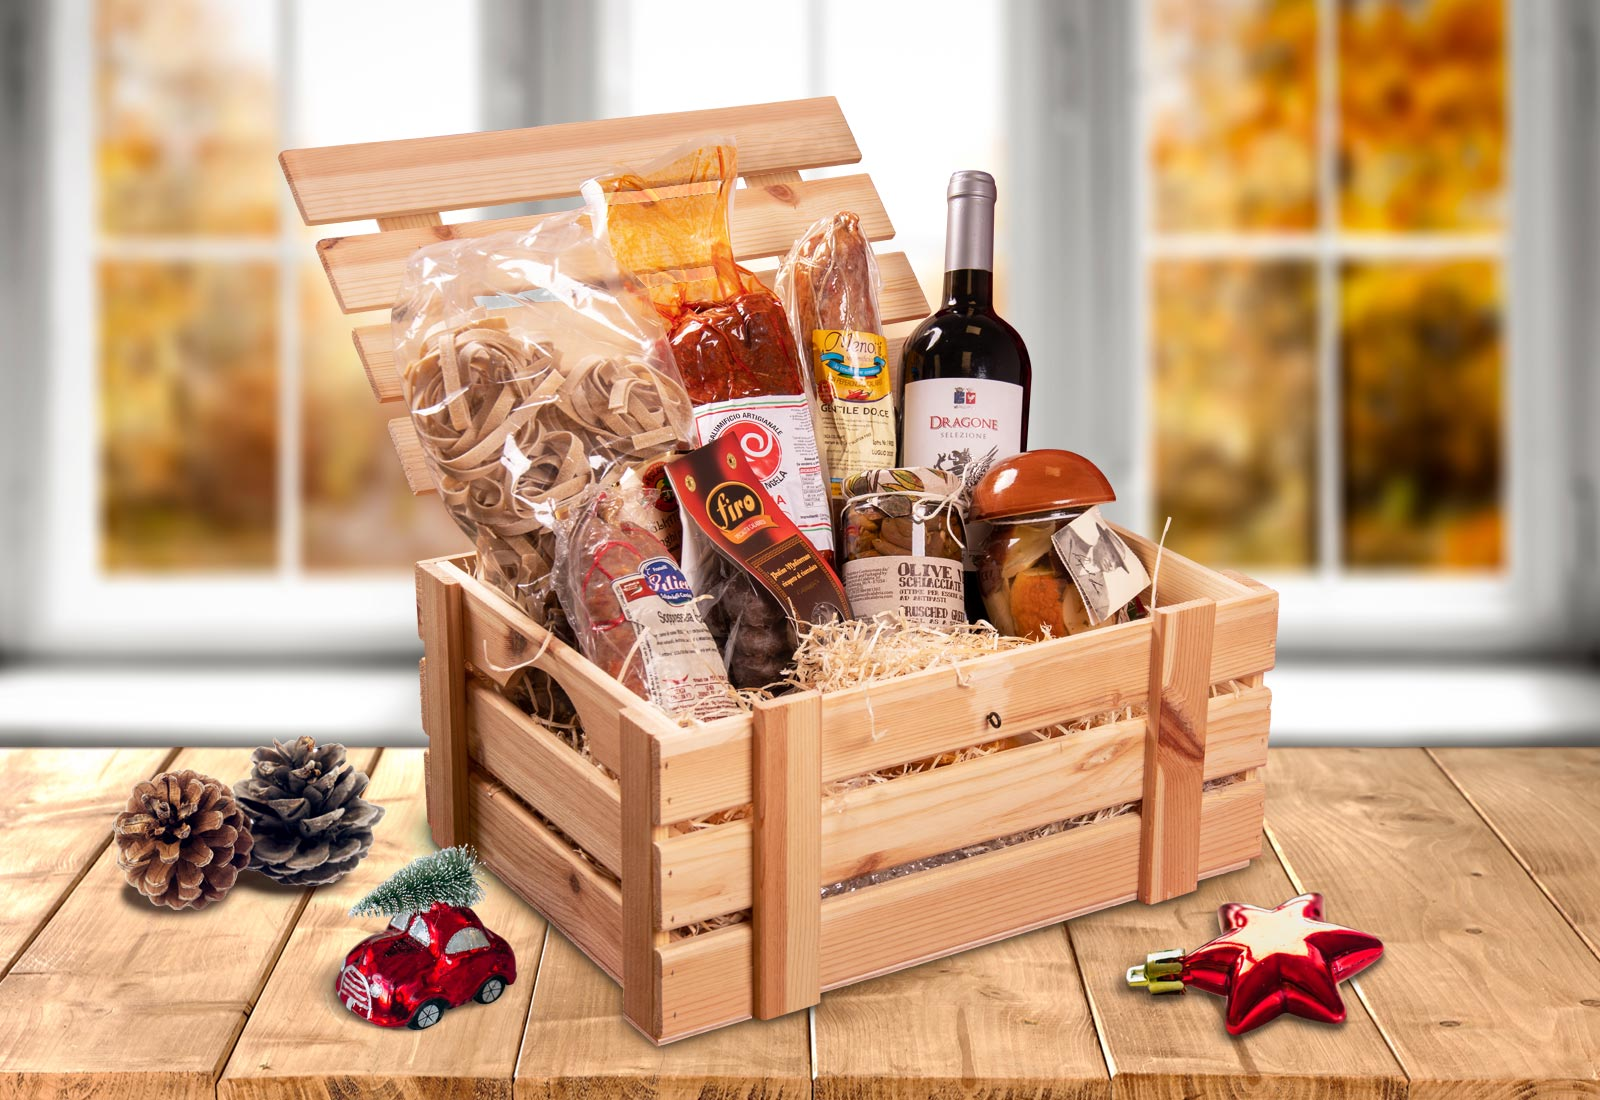 Baskets and gift packs for Christmas